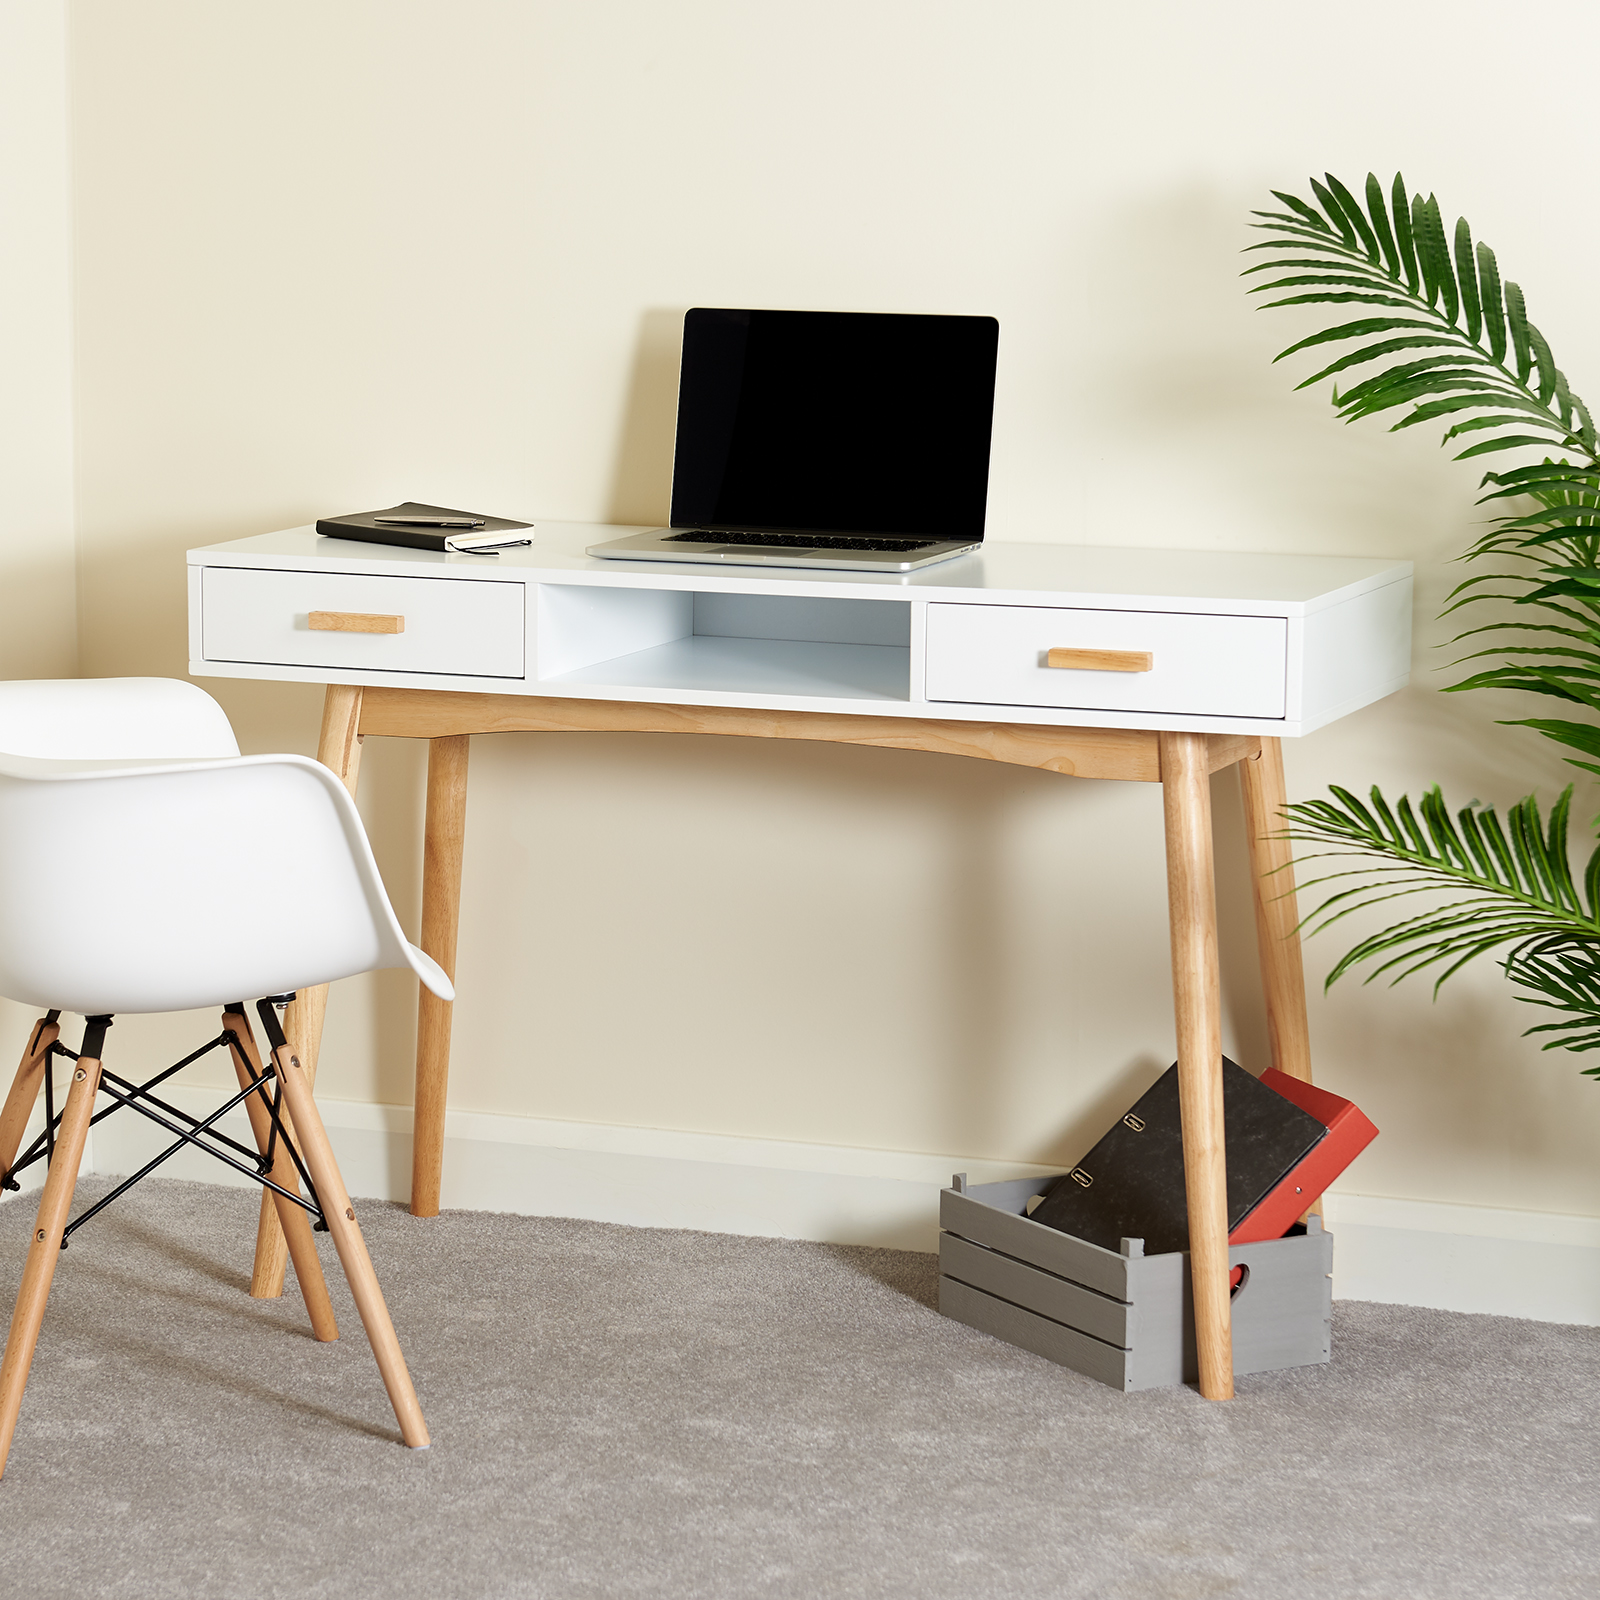 Sentinel Hartleys White Scandinavian Retro Home Office Work Pc Writing Desk With Drawers